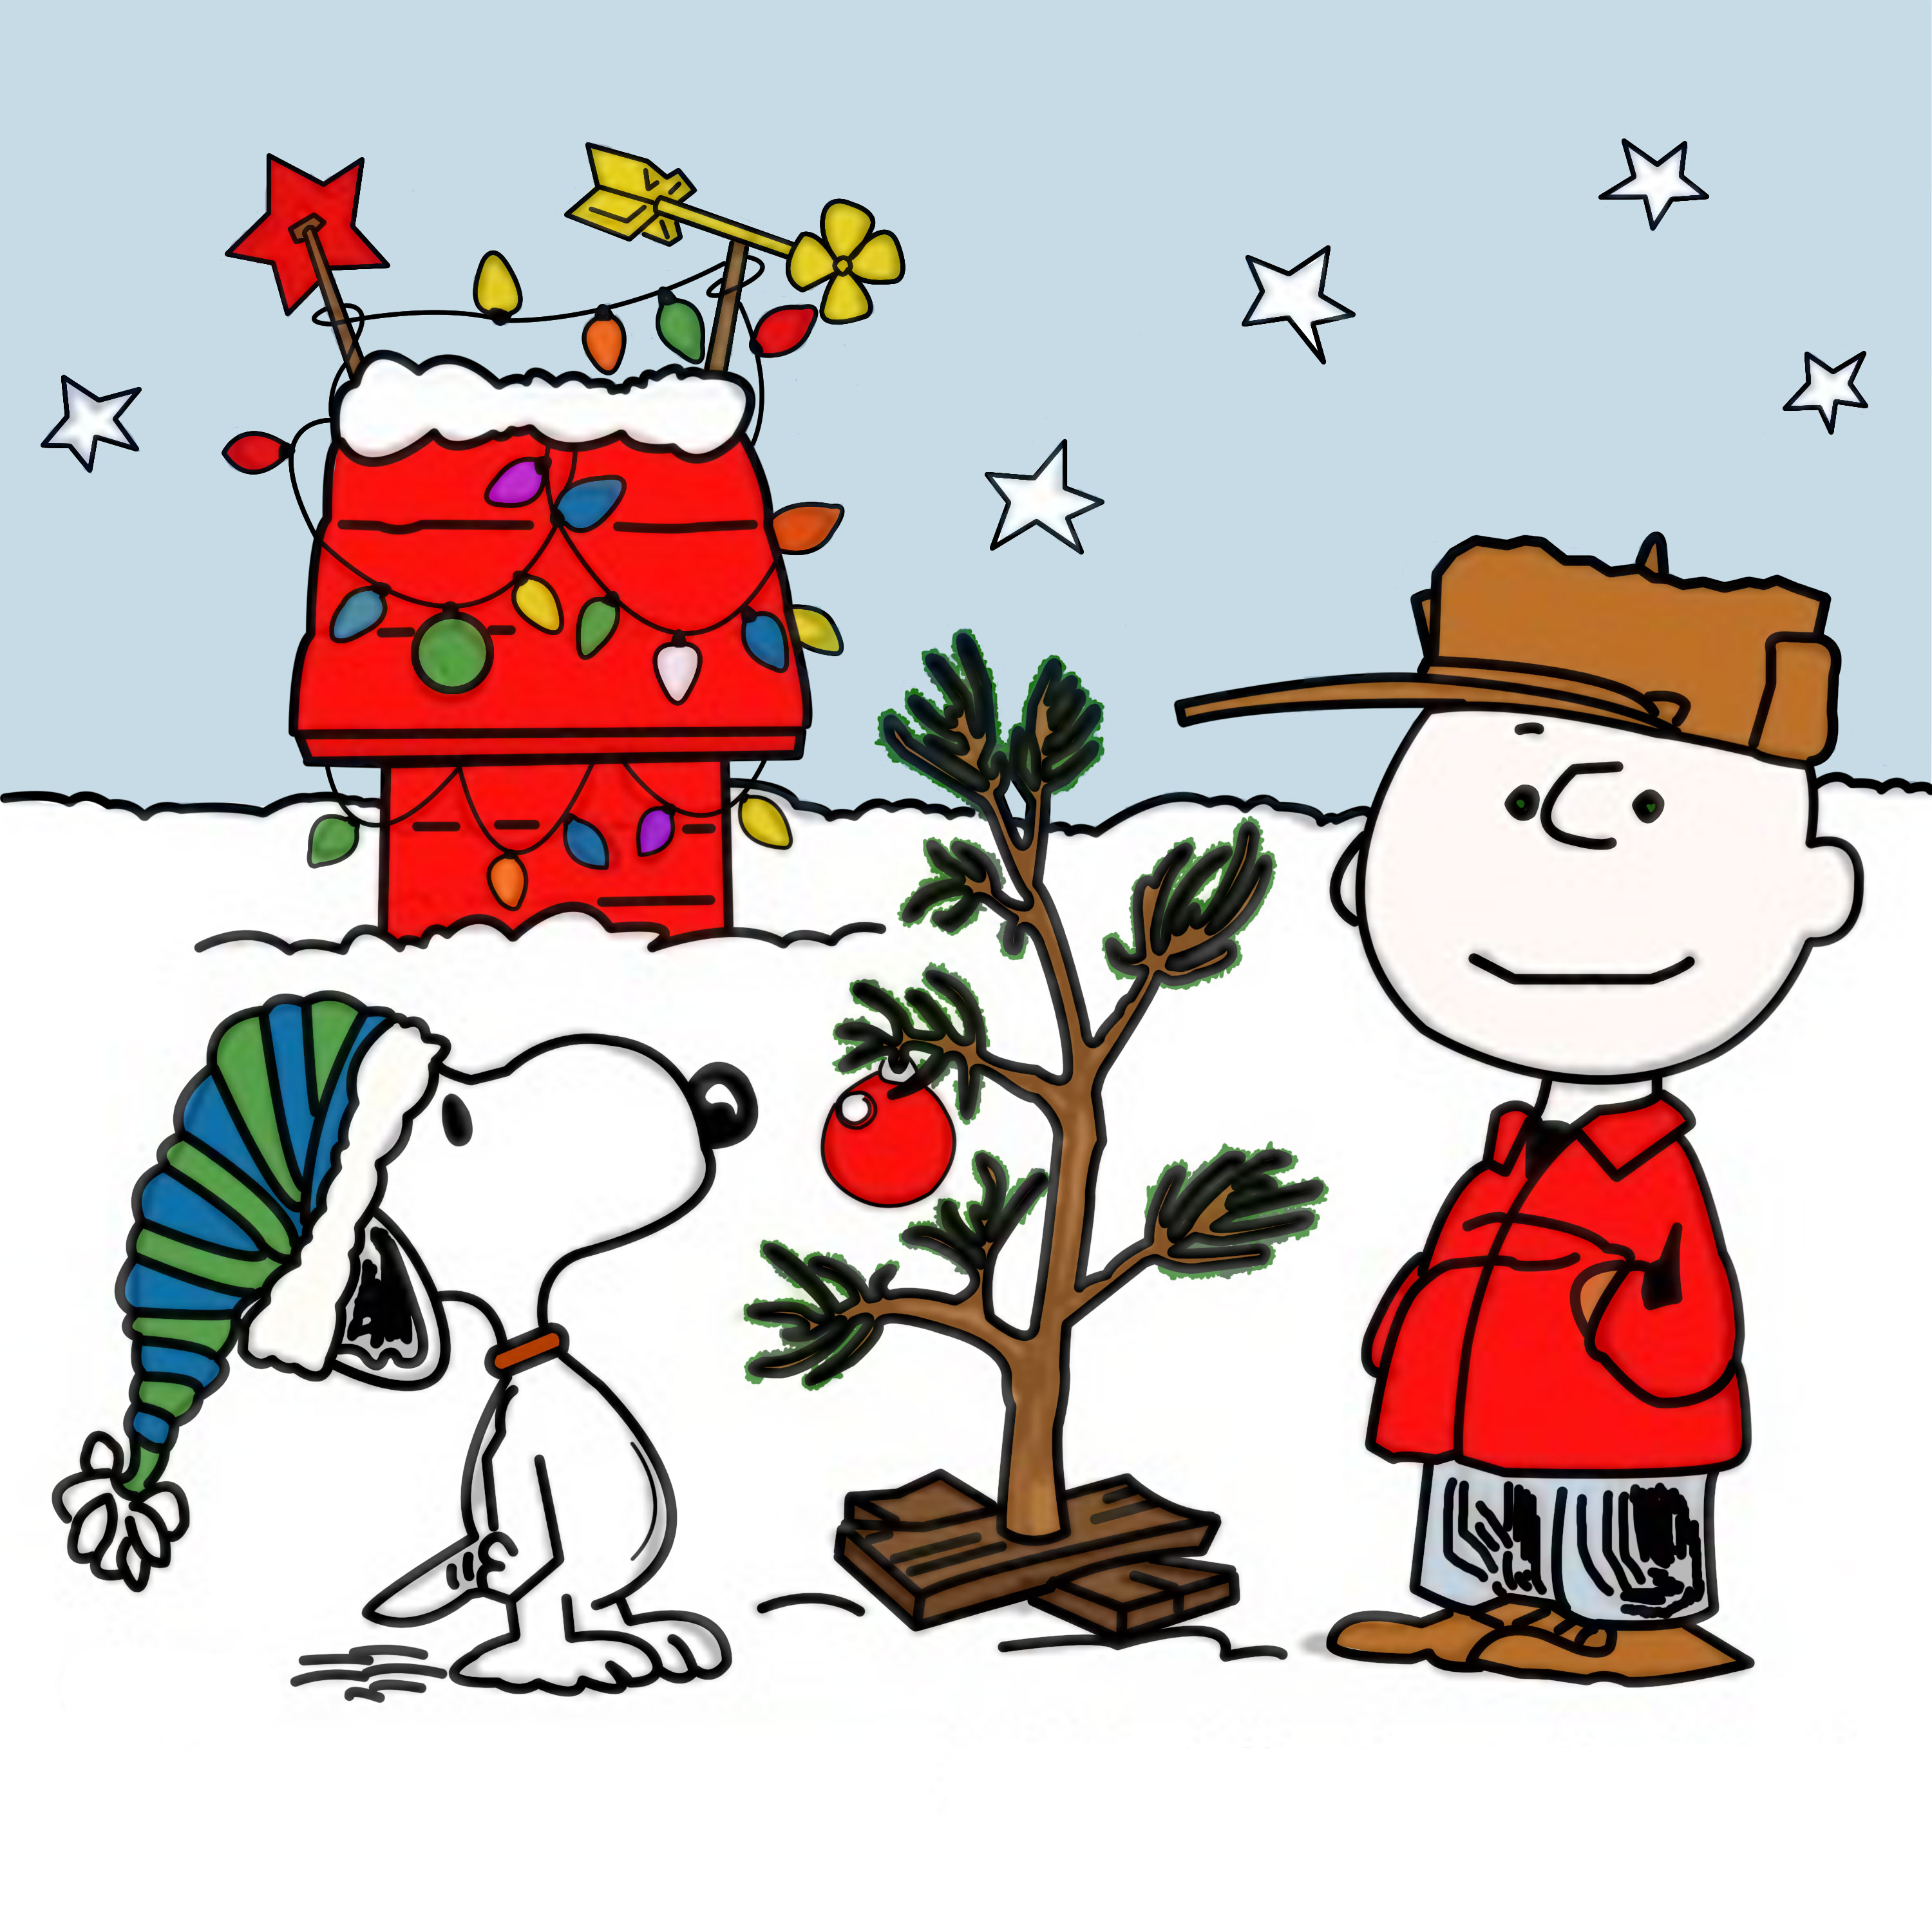 charlie brown peanuts comics snoopy christmas ry wallpaper 3000x3000 160964 wallpaperup